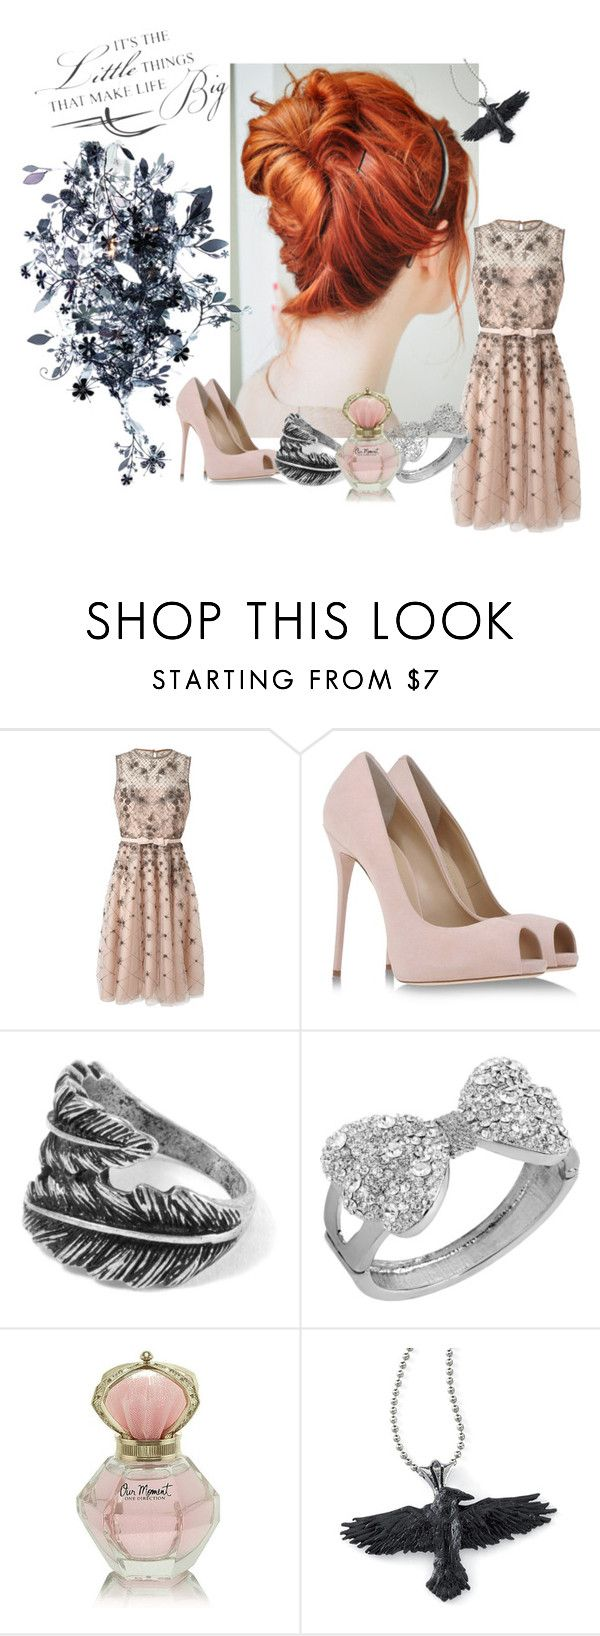 """""""The party"""" by fallenmusicangel ❤ liked on Polyvore featuring Valentino, Giuseppe Zanotti, Betsey Johnson, Artecnica, women's clothing, women, female, woman, misses and juniors"""